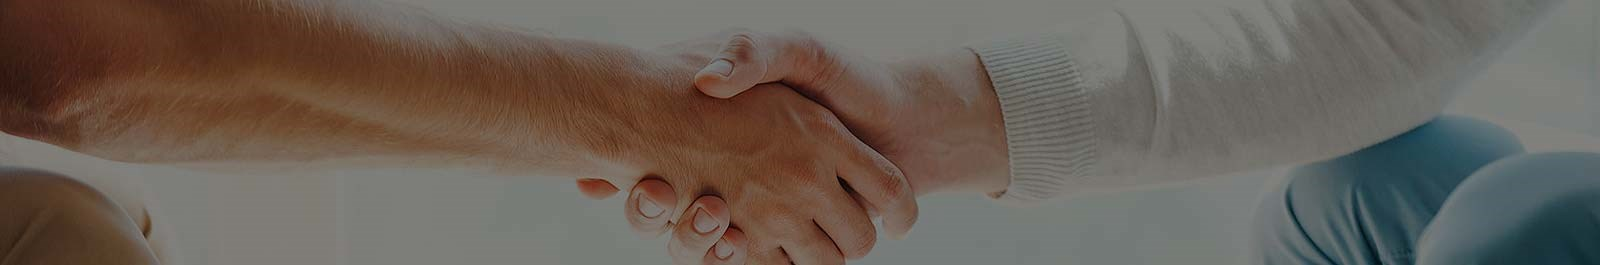 Header image - closeup of two people shaking hands upon meeting